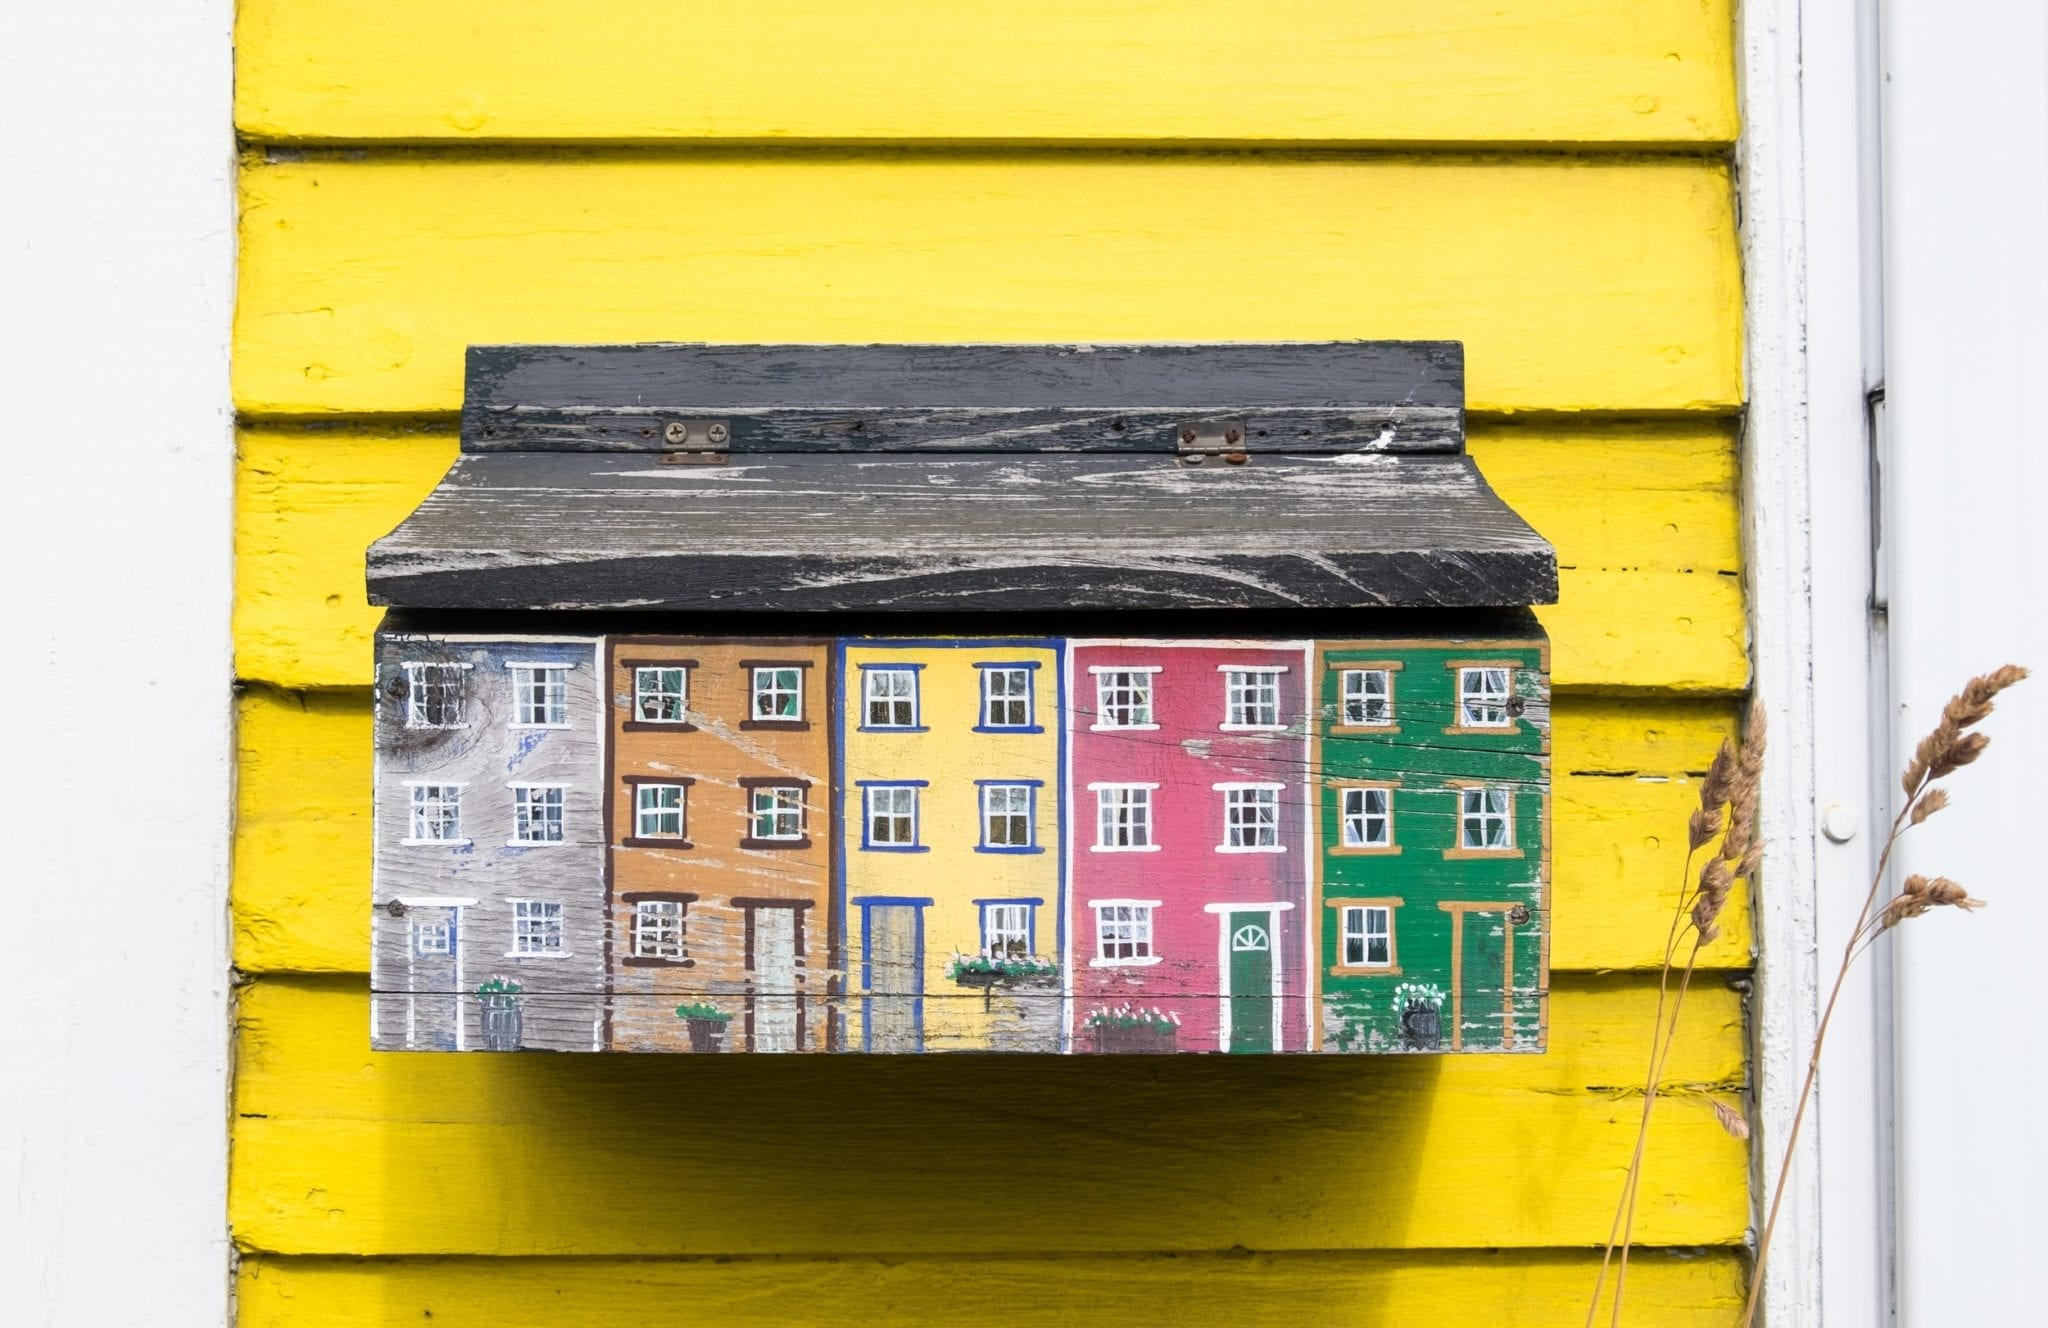 A mailbox shaped and painted like the houses of Jelly Bean Row, attached to a yellow house.